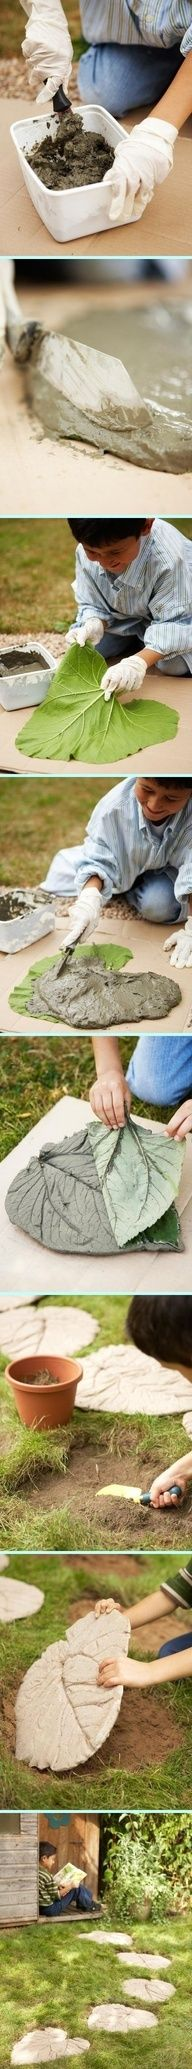 DIY concrete leaf flagstones So cute